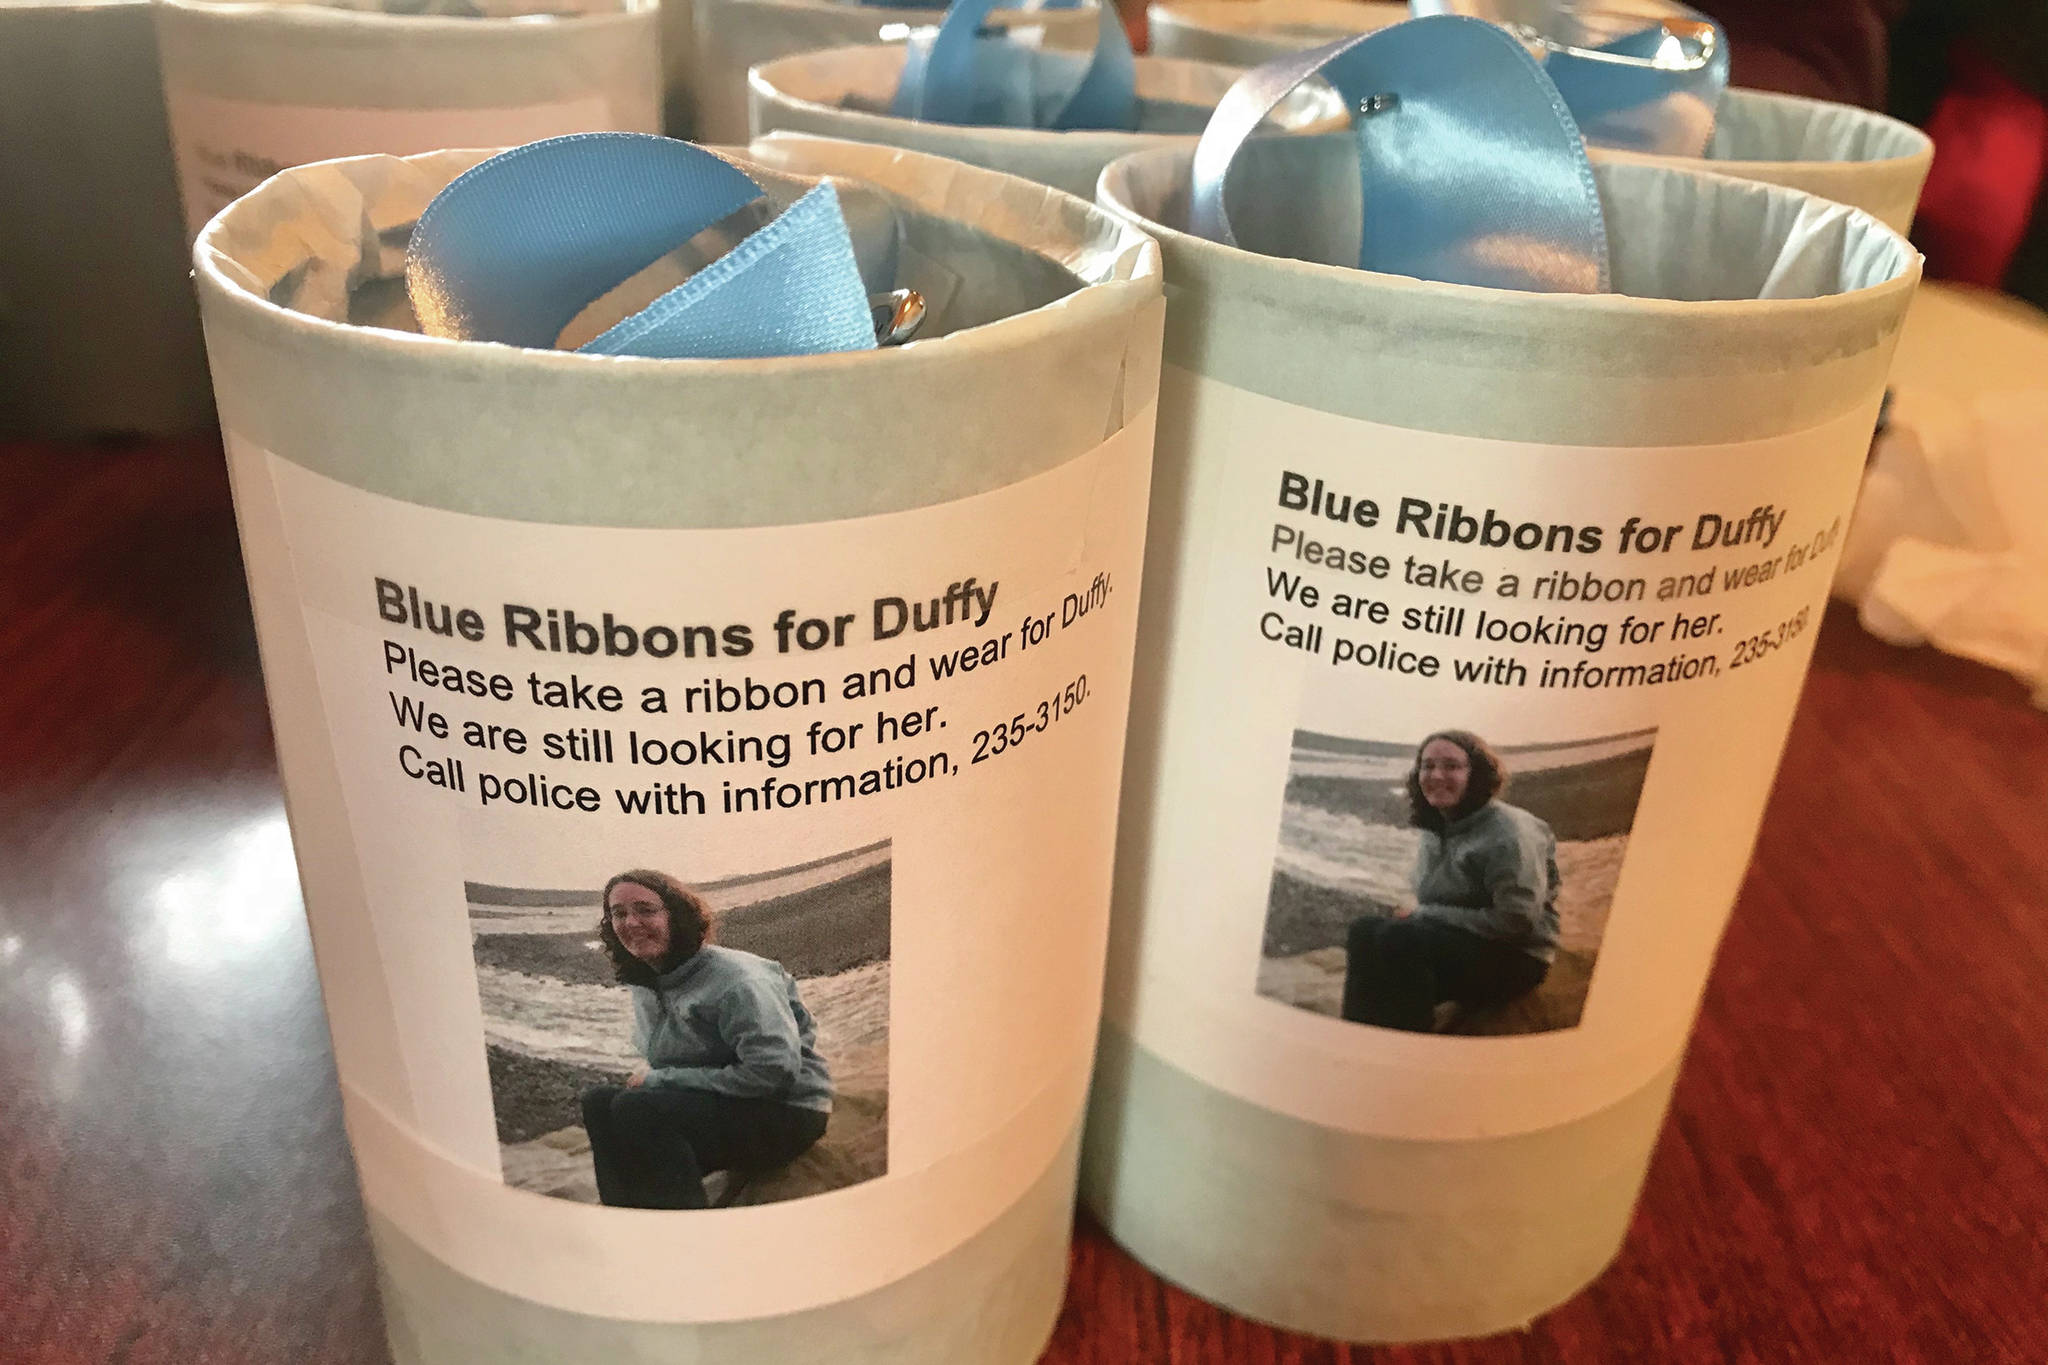 """Photo courtesy of Christina Whiting                                Tins with blue ribbons were placed on Feb. 26, 2020, around Homer, Alaska, for people to wear as part of an awareness campaign for a missing Homer woman, Anesha """"Duffy"""" Murnane, missing since Oct. 17, 2019."""